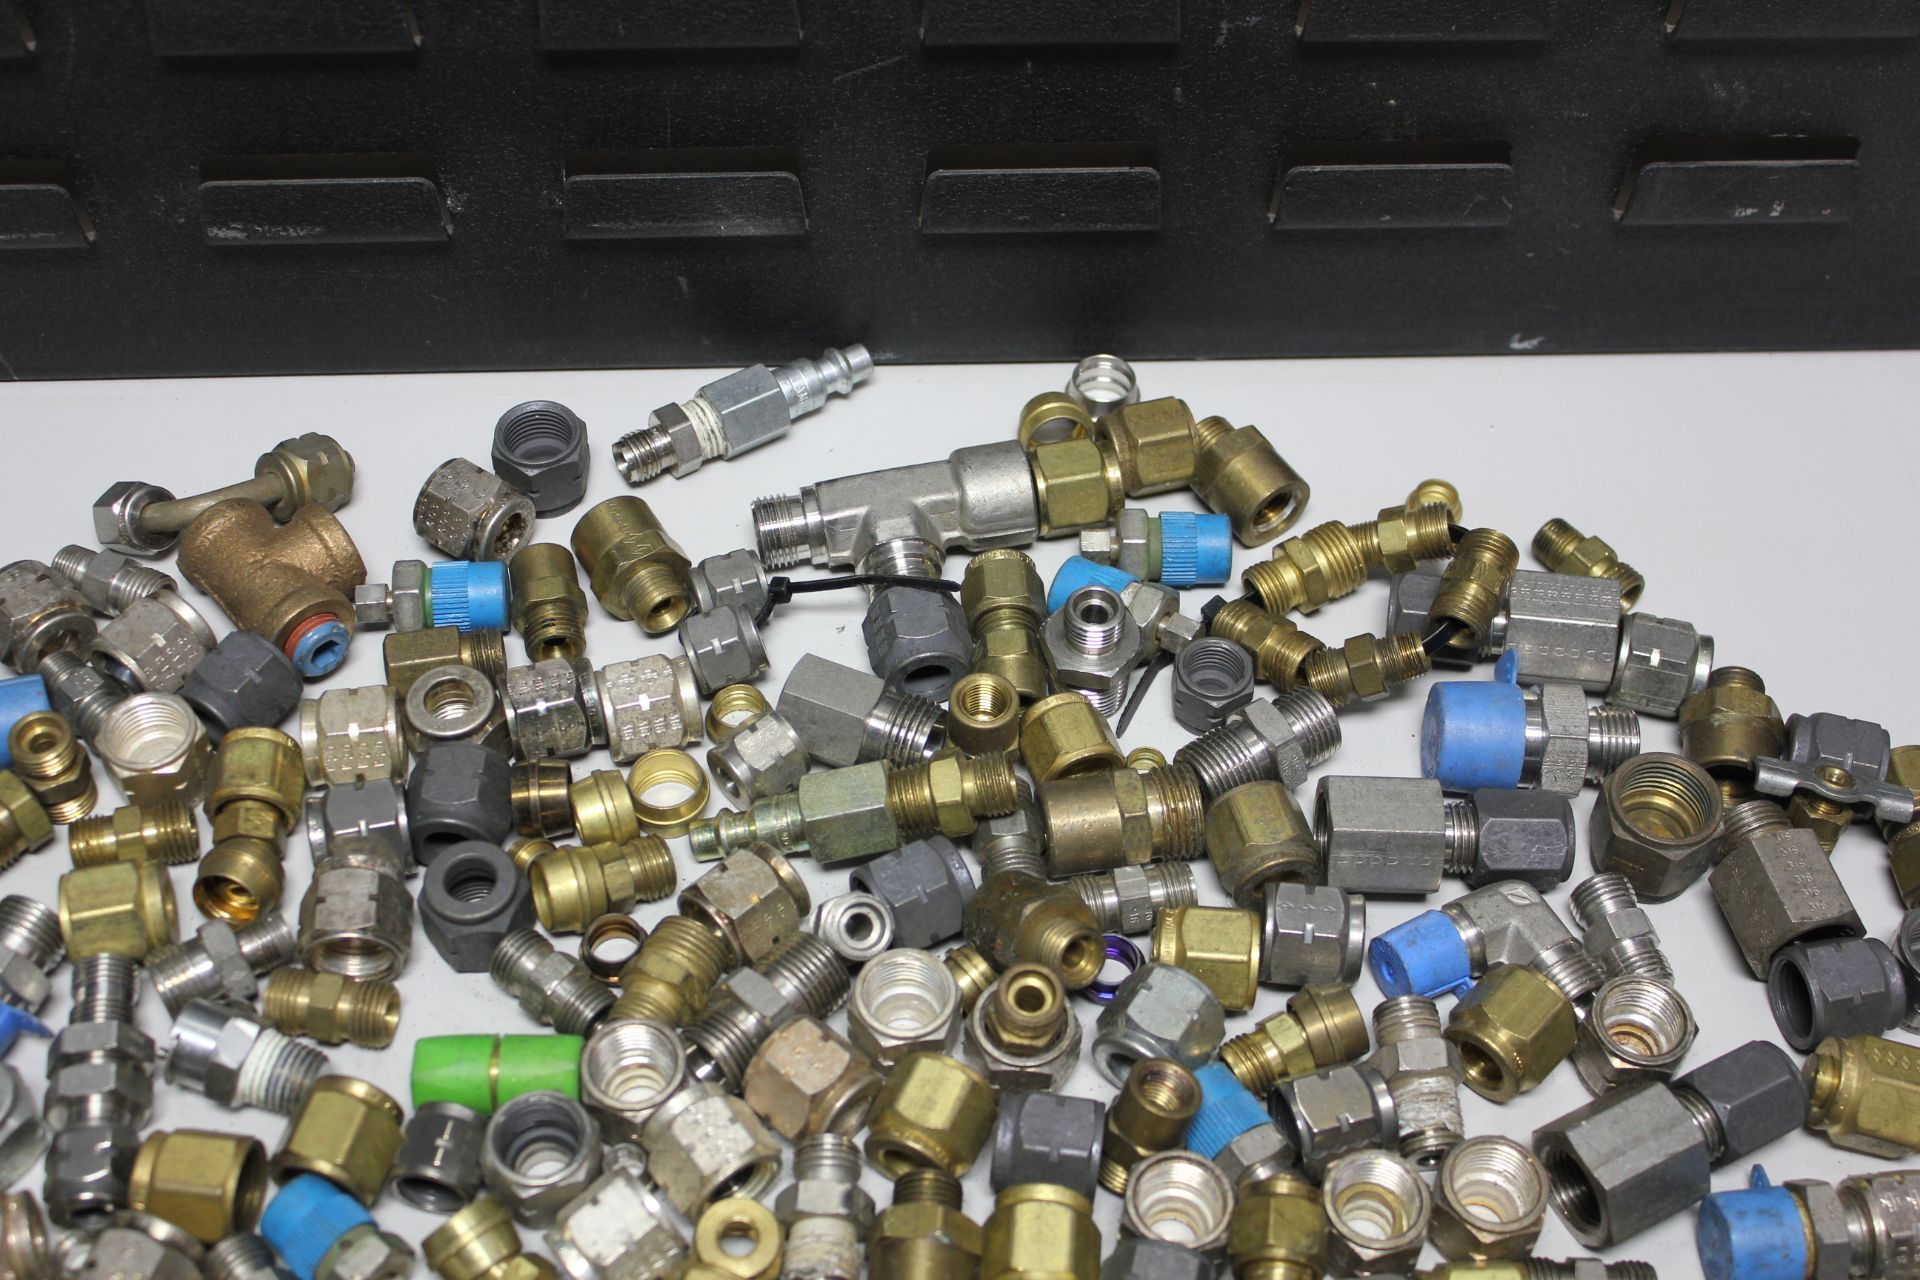 LOT OF COMPRESSION FITTINGS - SWAGELOK, CAJON, ETC - Image 3 of 8